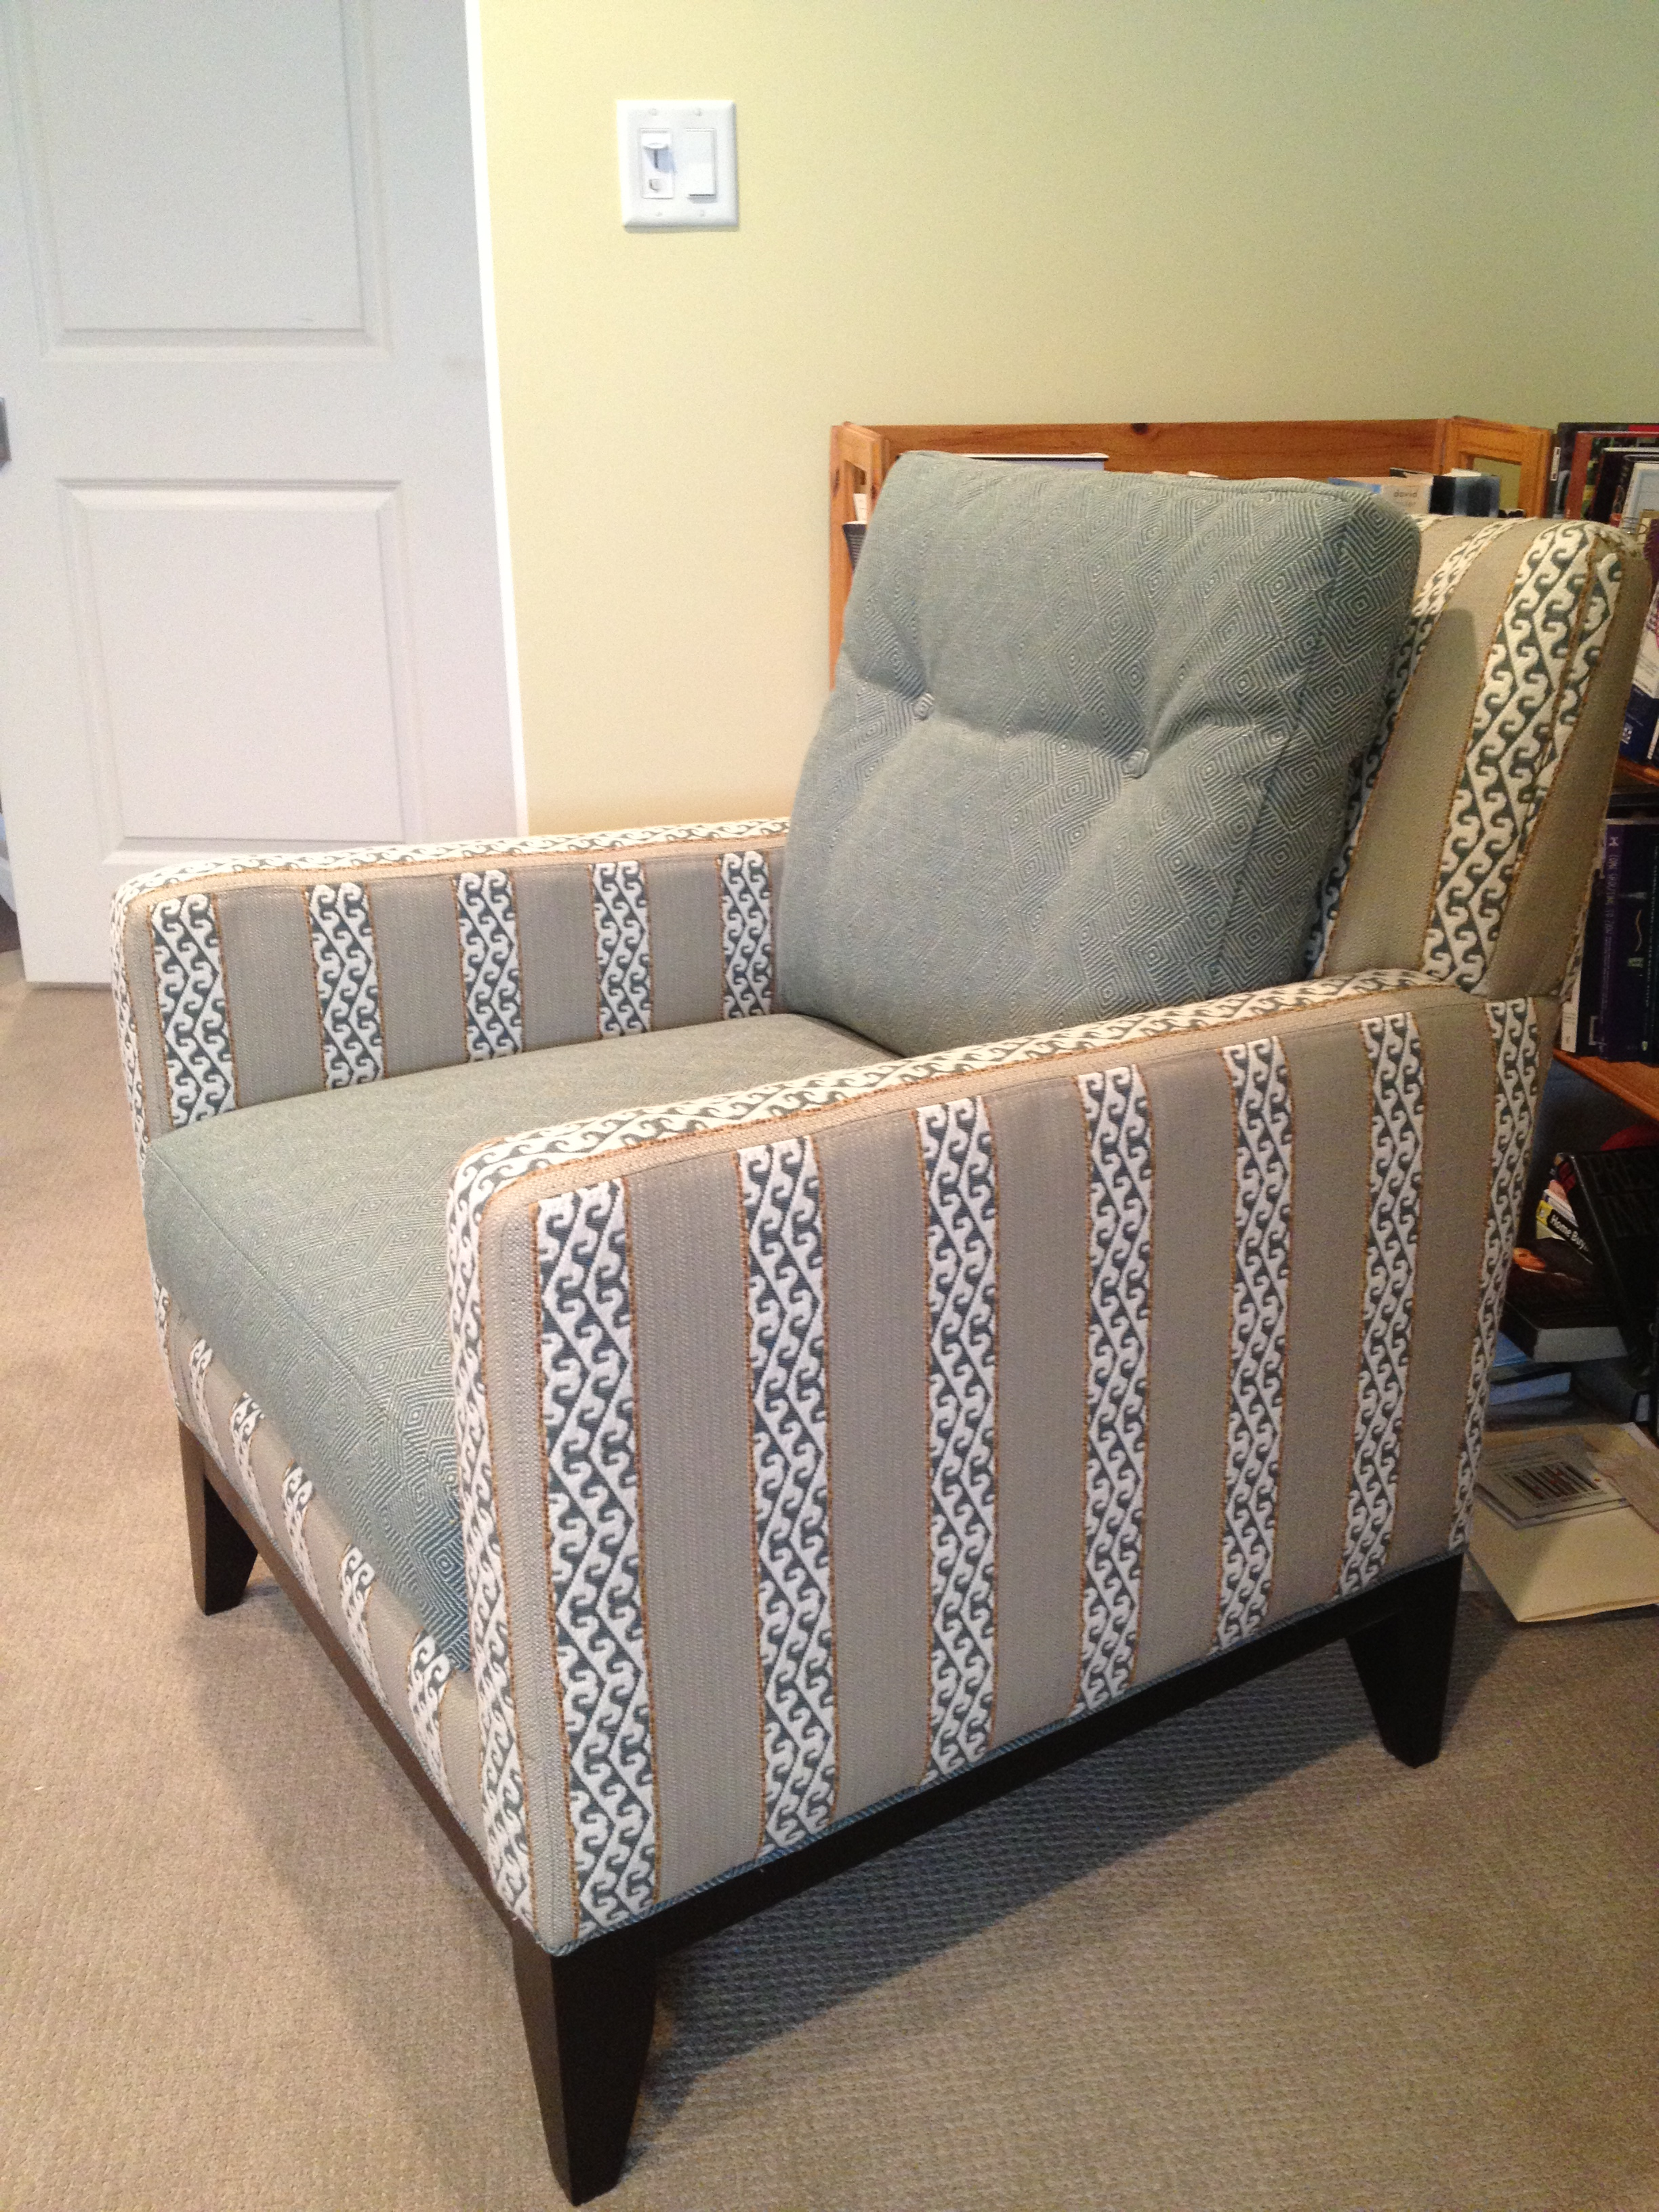 Sherrill Furniture lounge chair with Robert Allen fabric | Designed by Kelly Rogers Interiors